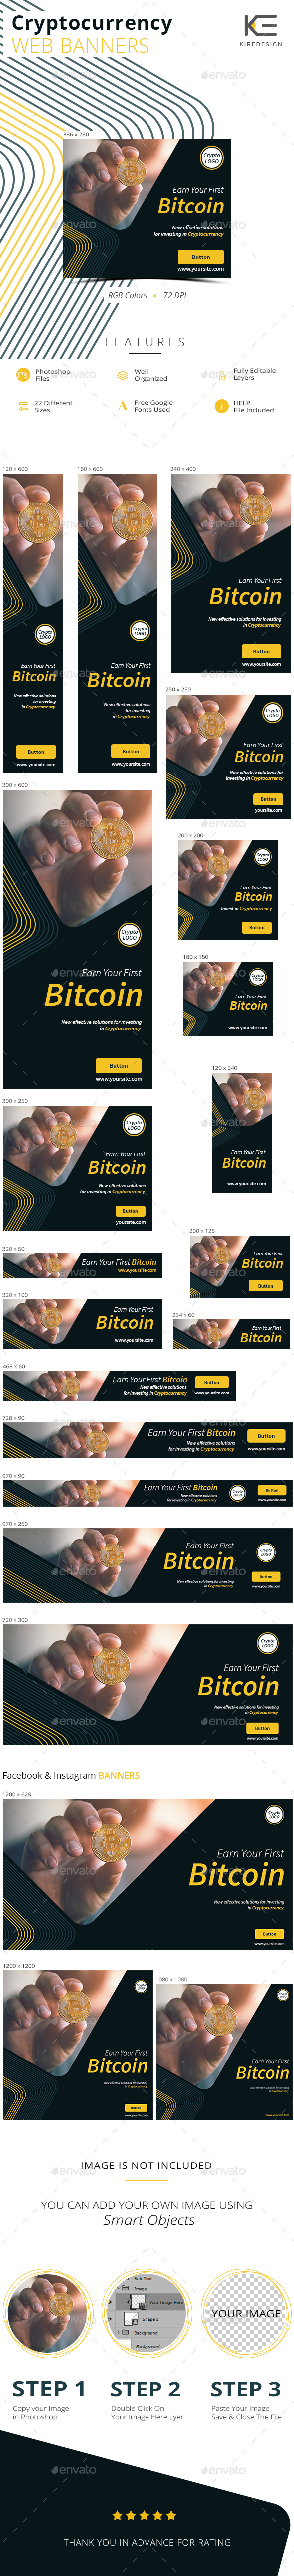 Cryptocurrency Banners - Banners & Ads Web Elements